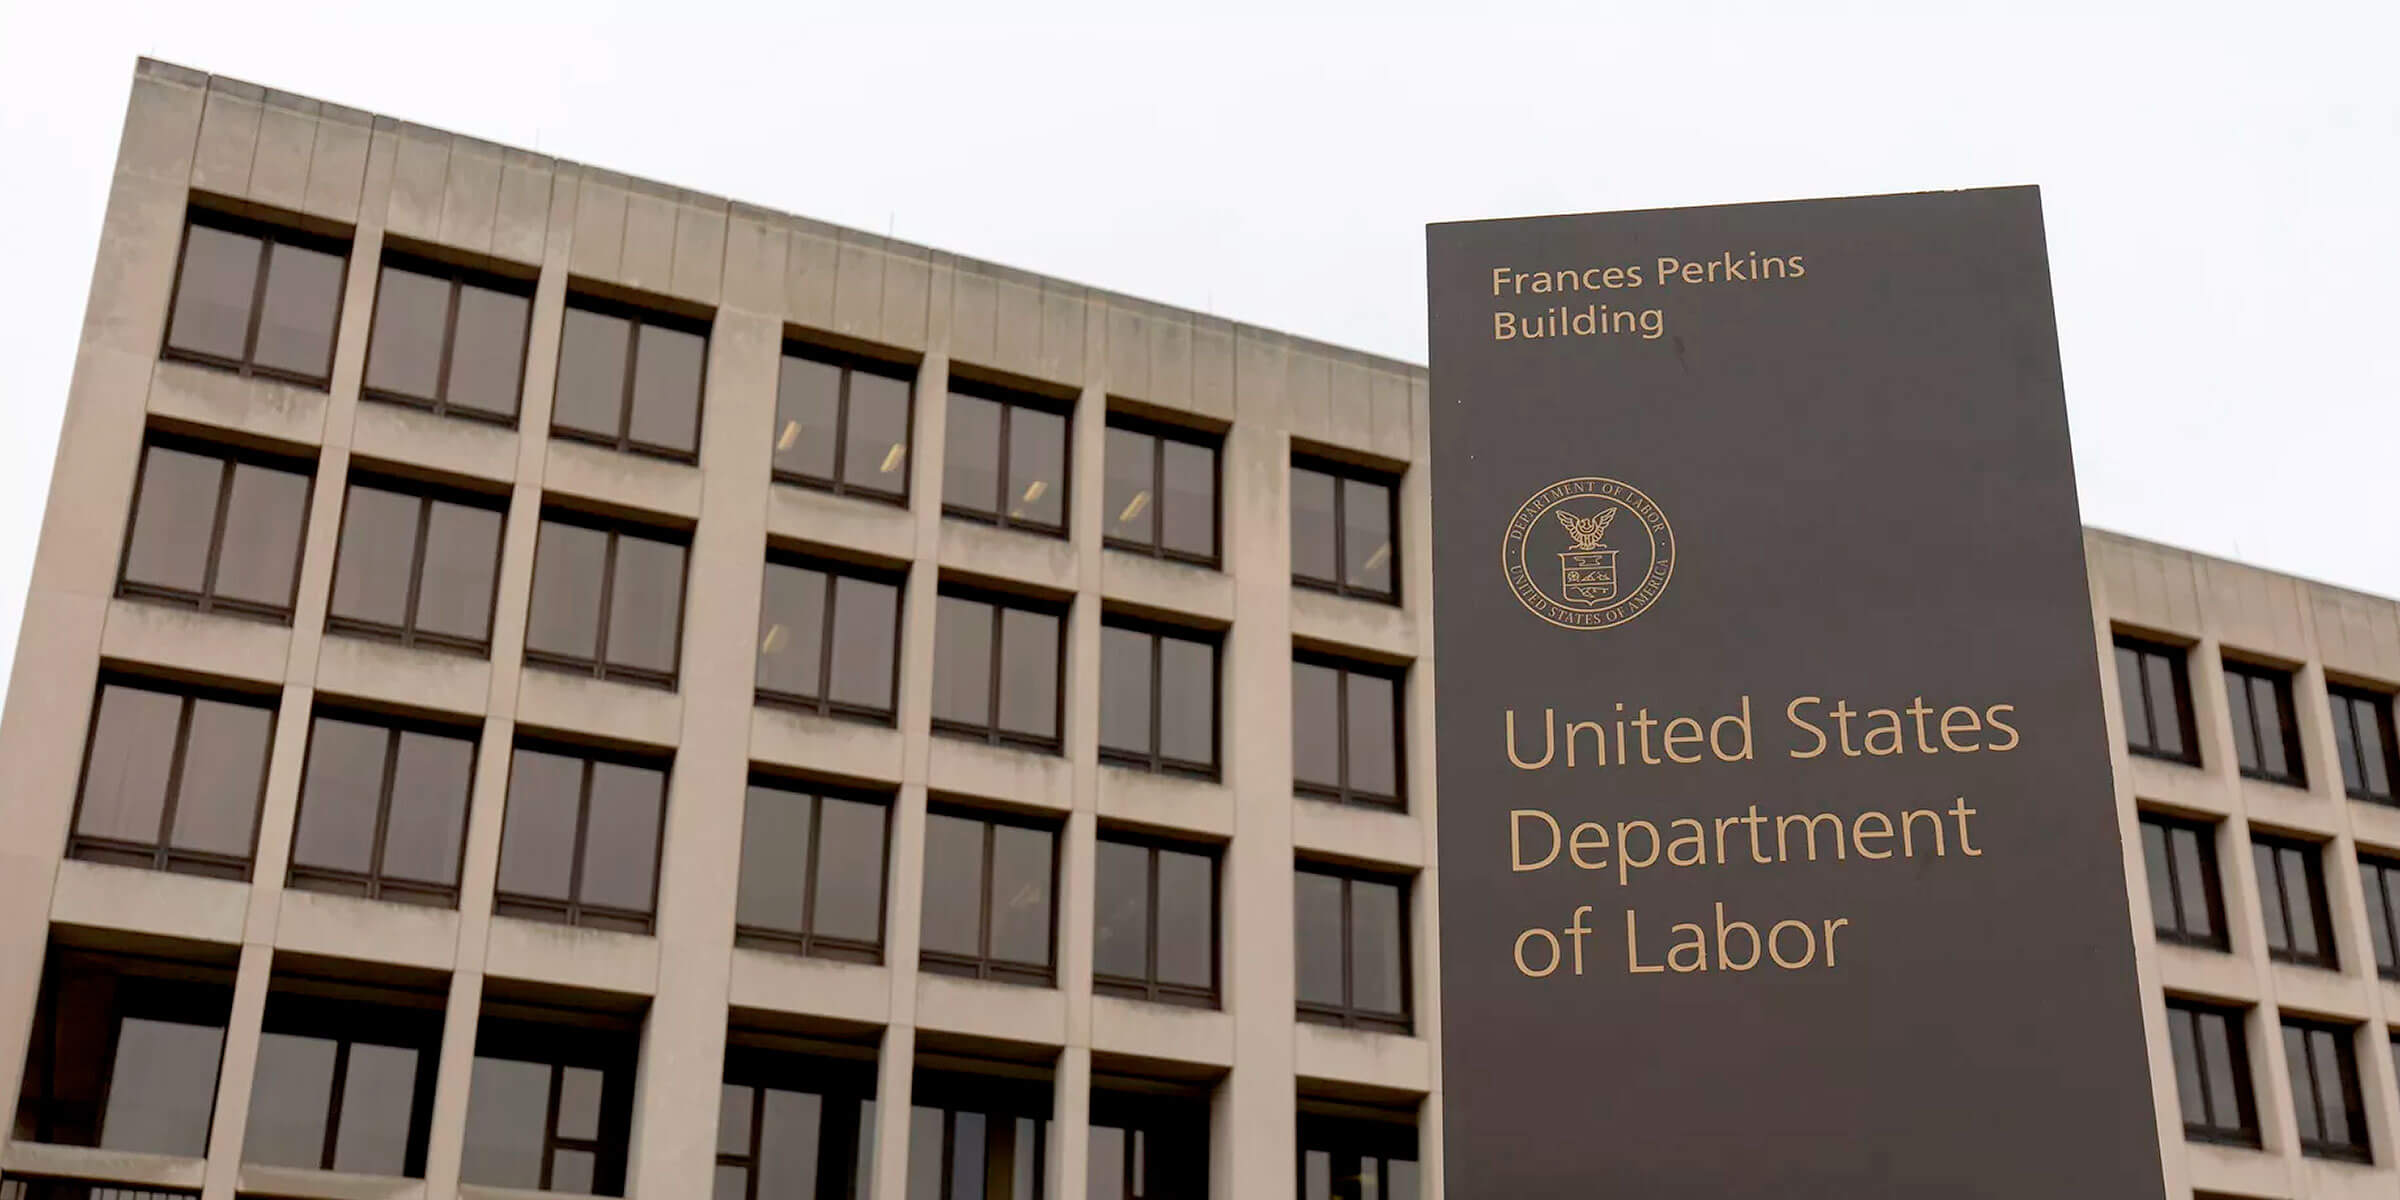 The Brewers Association CEO met with the U.S. Department of Labor to discuss how the federal government can help small breweries amid the COVID-19 pandemic.